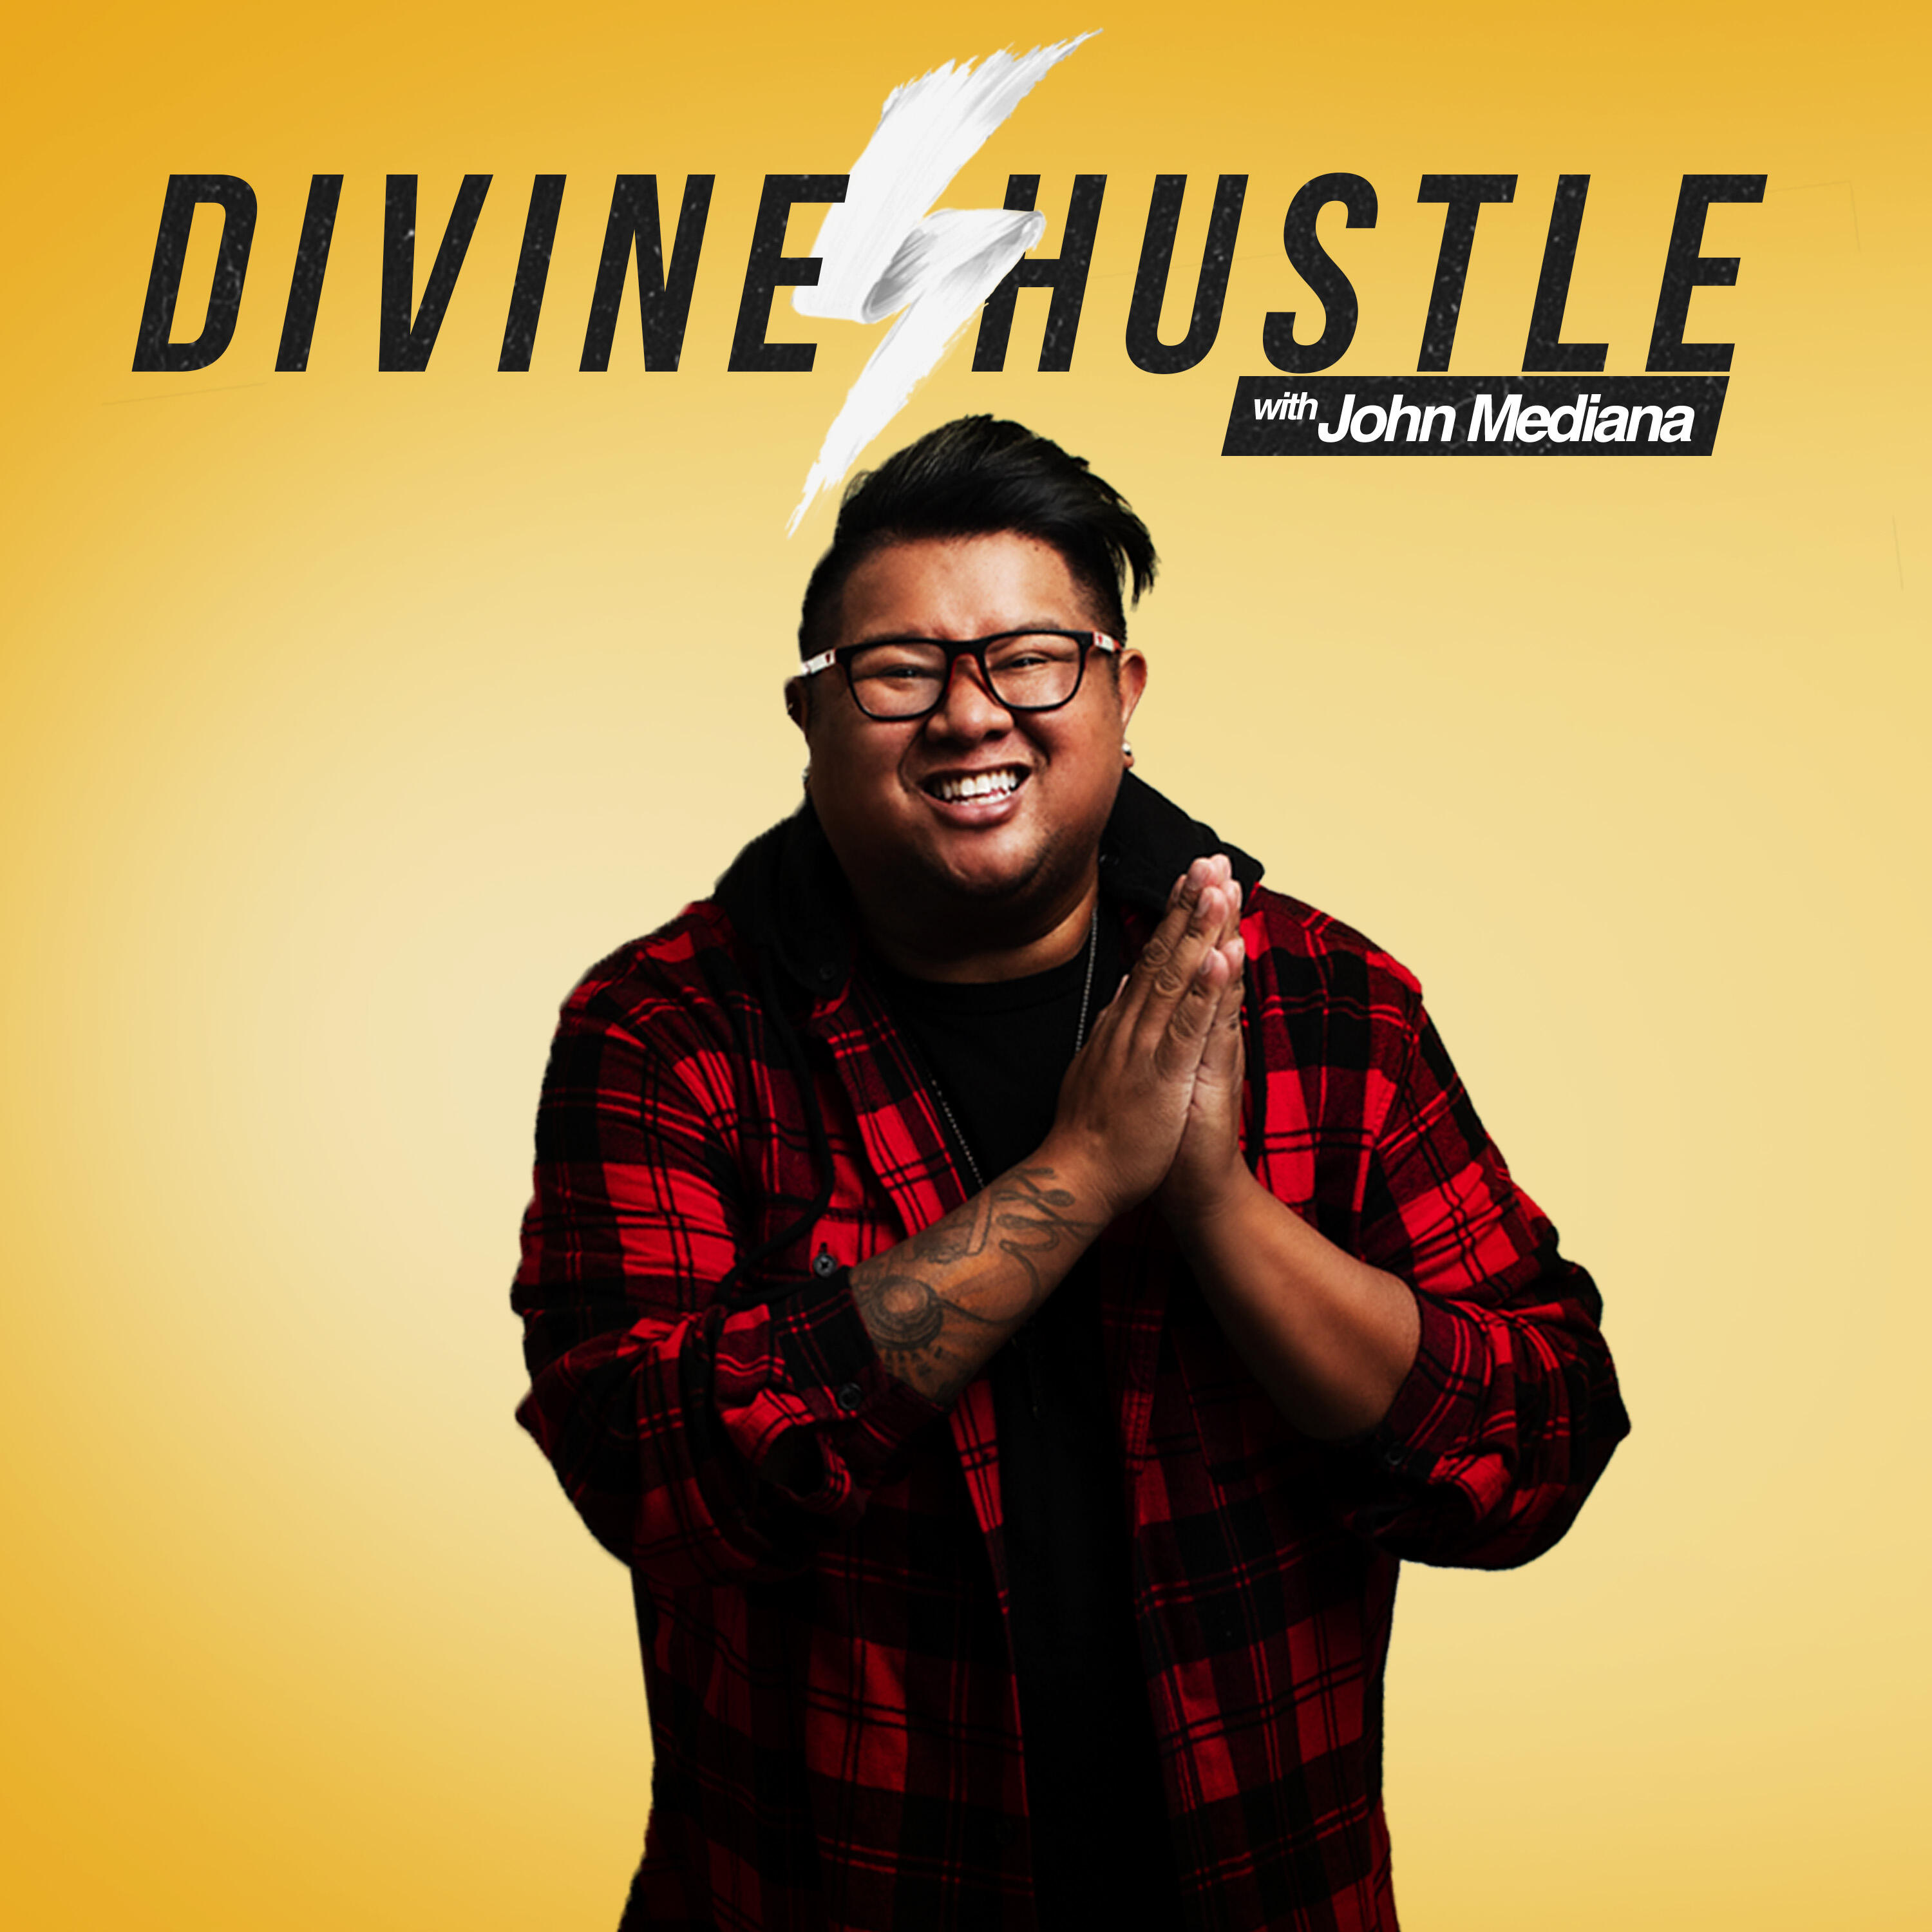 The Divine Hustle Podcast